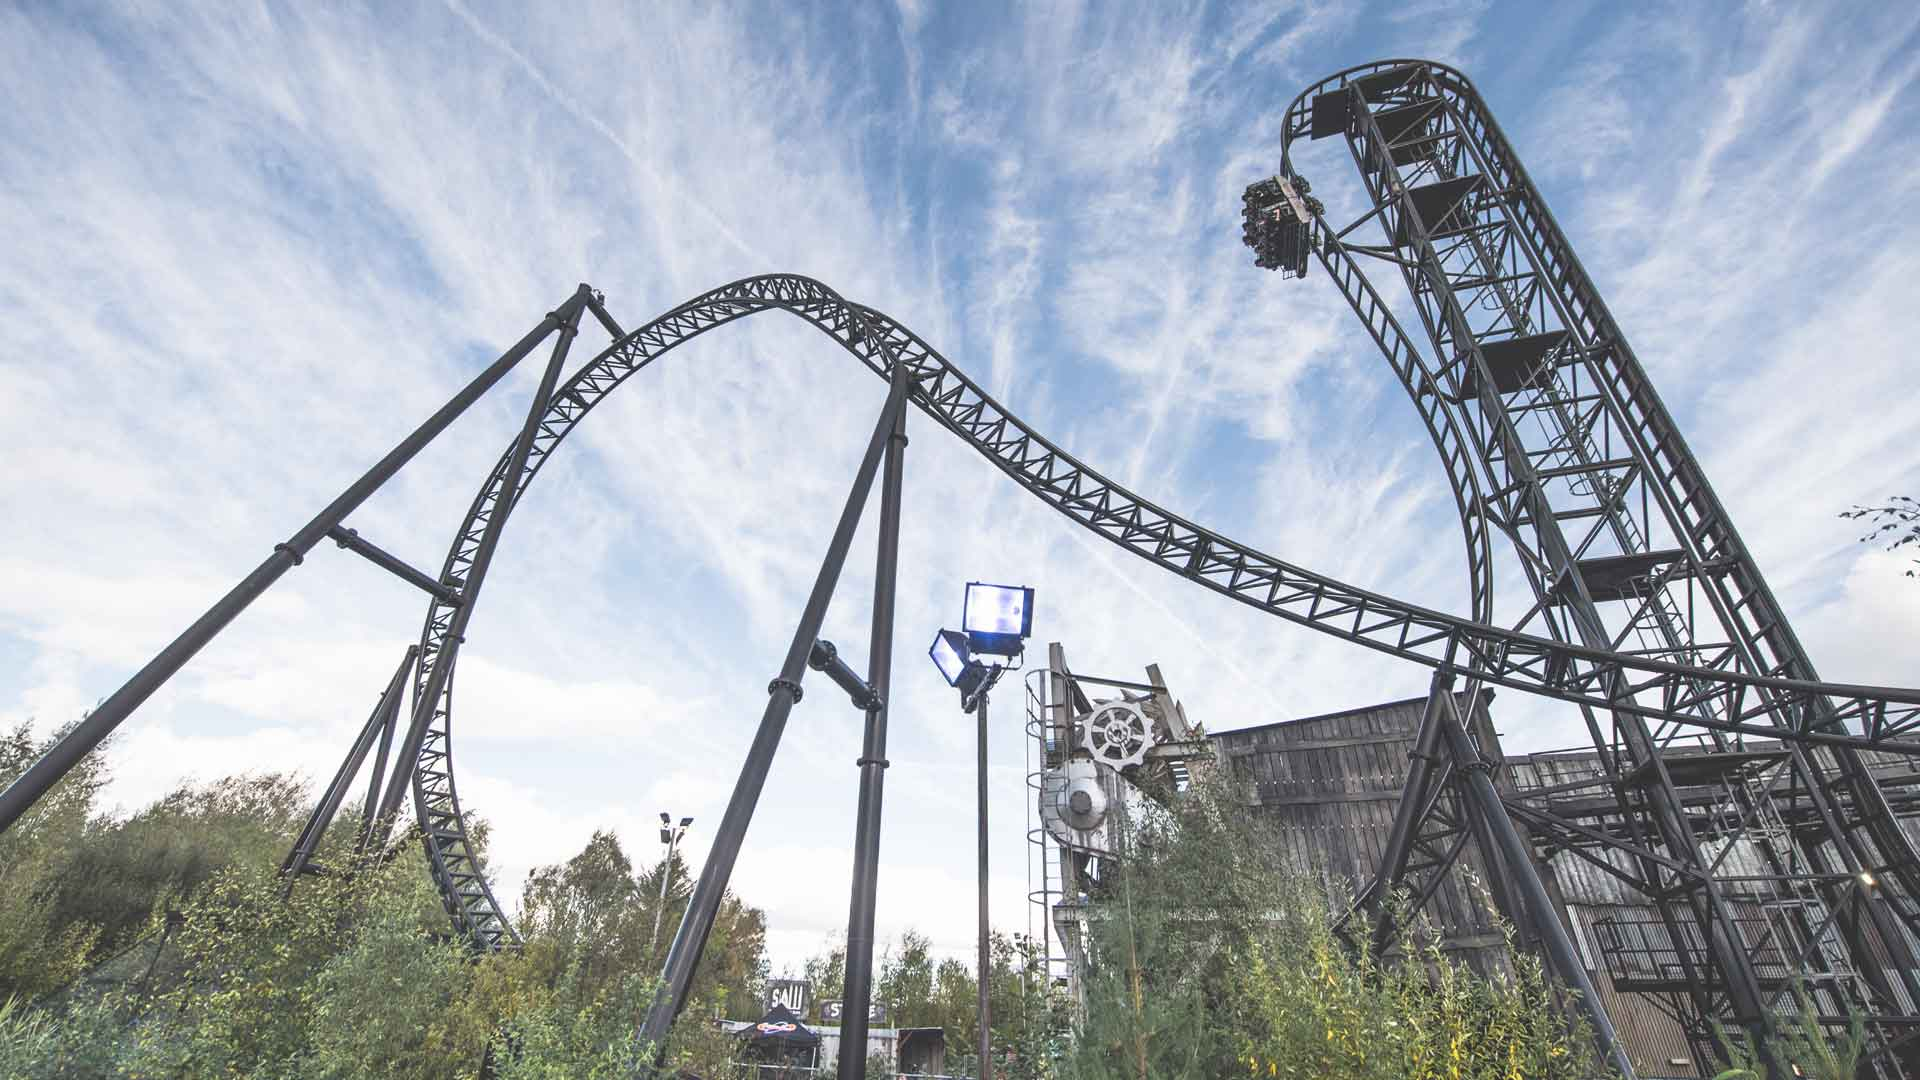 Local attraction Thorpe Park